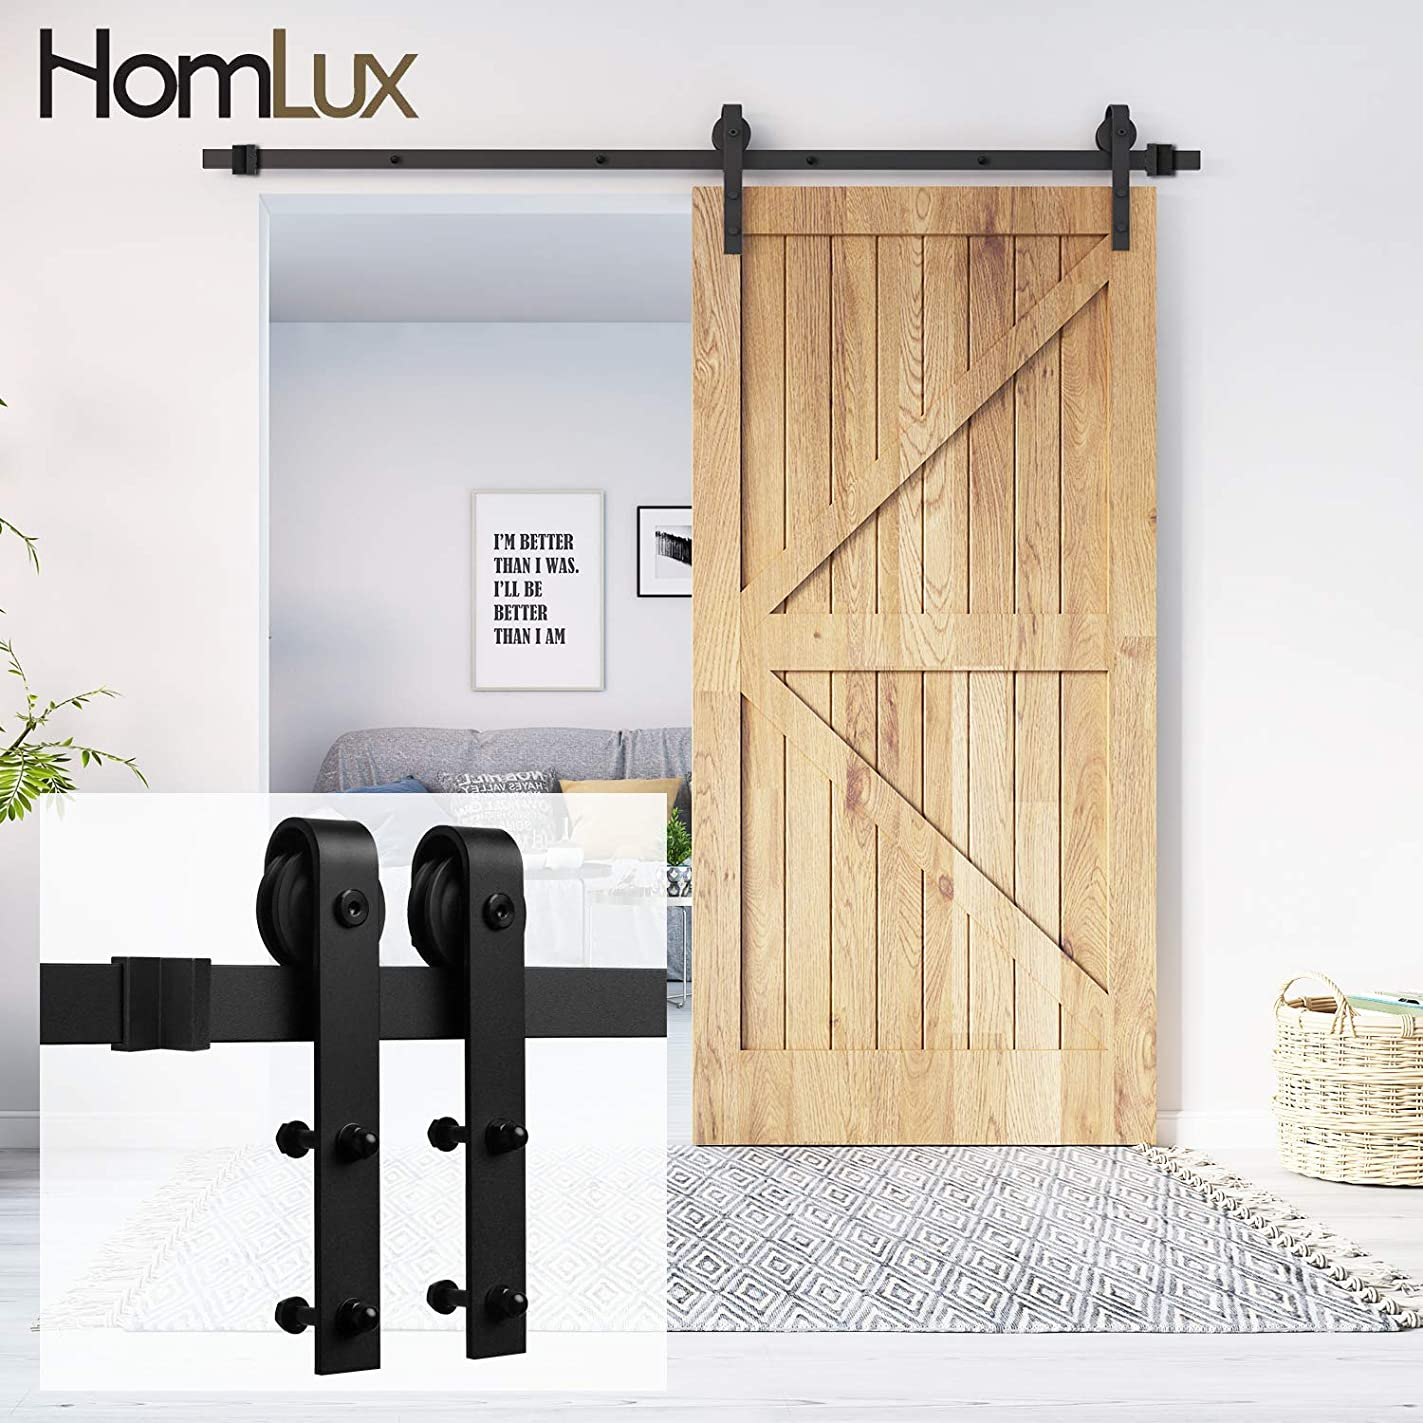 Homlux 6ft Heavy Duty Sturdy Sliding Barn Door Hardware Kit One Door - Smoothly and Quietly - Simple and Easy to Install - Fit 1 3/8-1 3/4